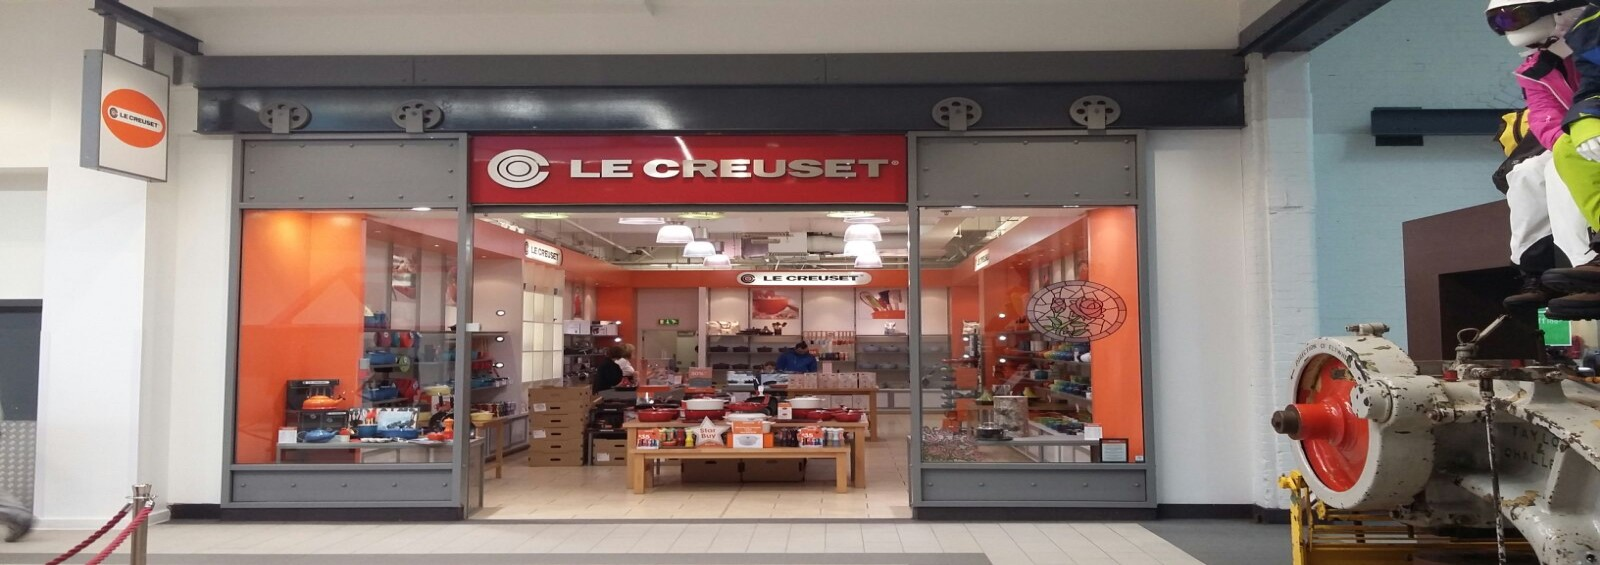 Le Creuset fire safe hoarding system installed by Lintons